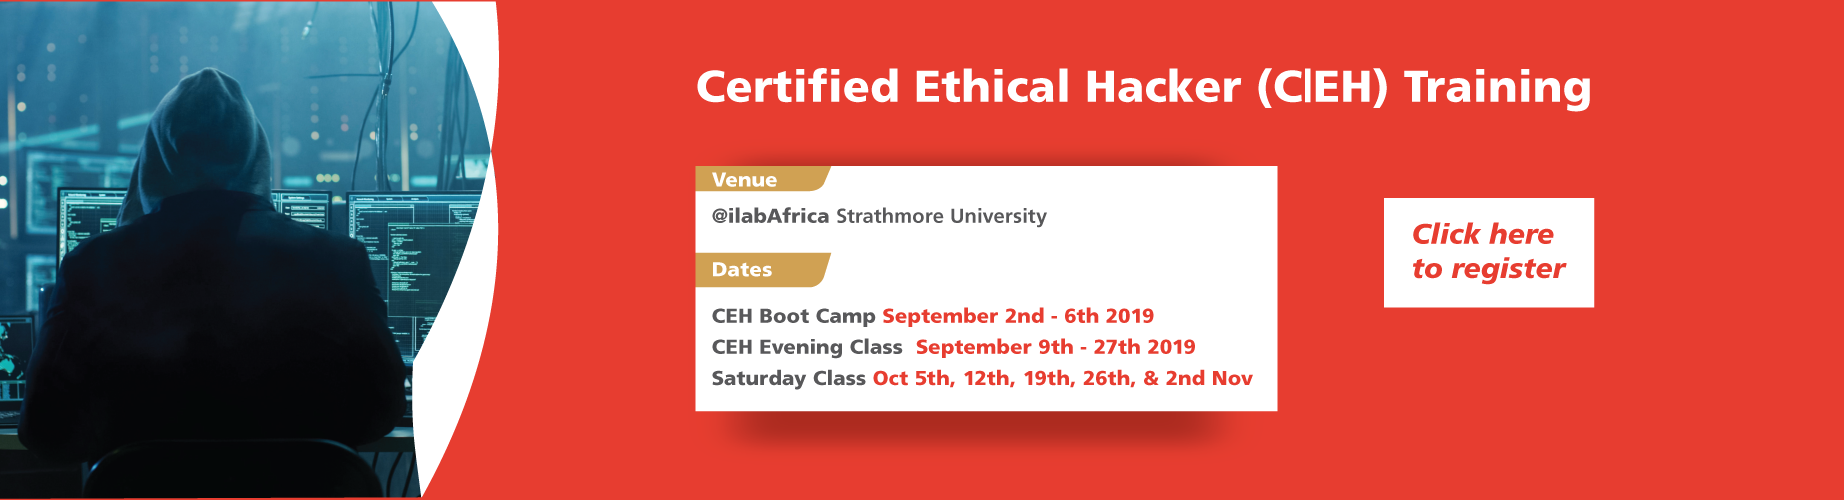 Certified-Ethical-Hacker-2